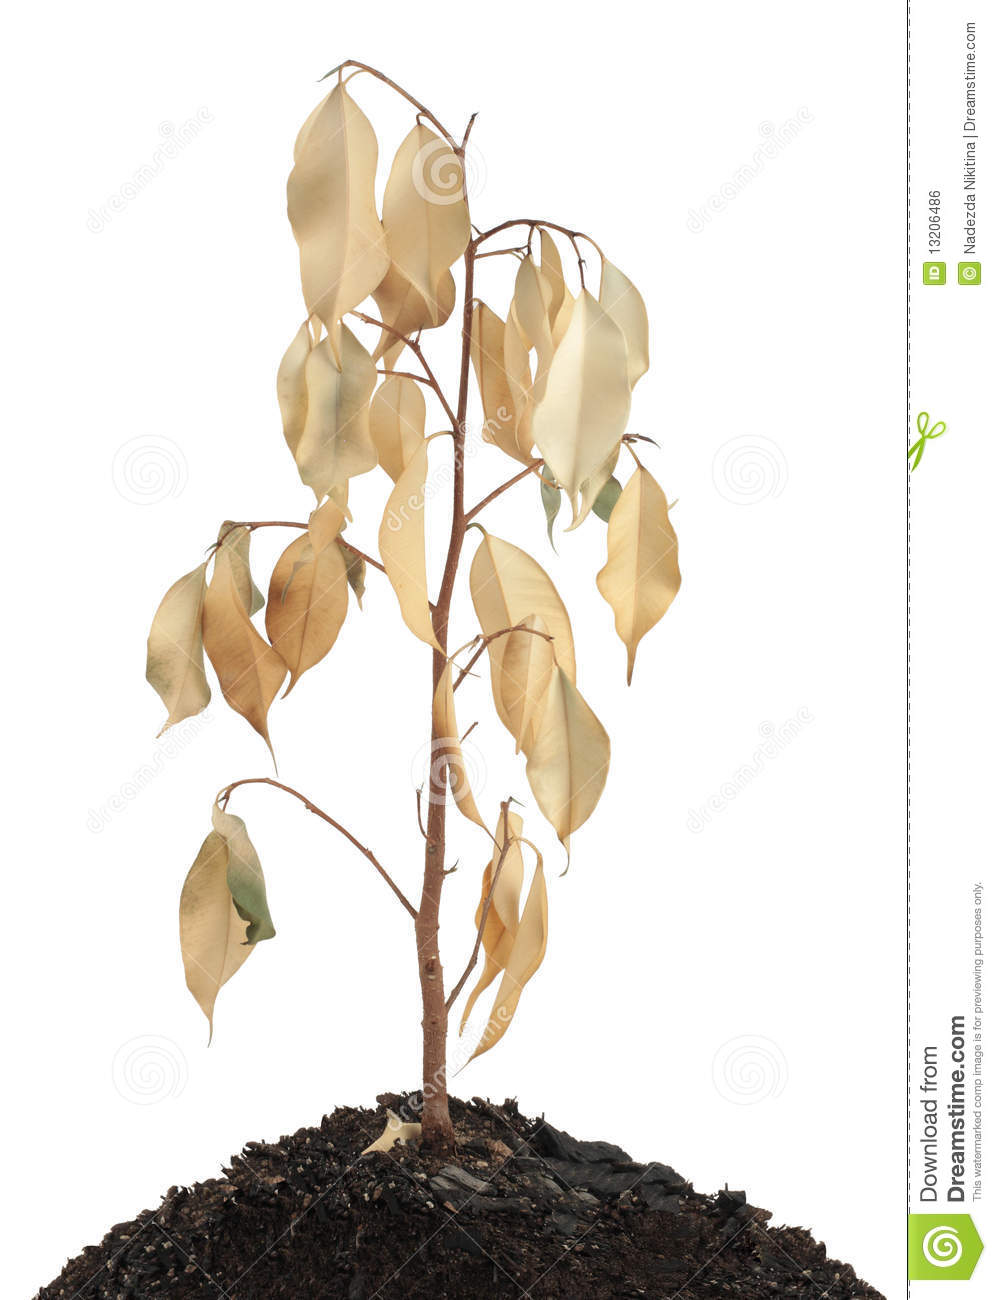 Dried plant clipart.